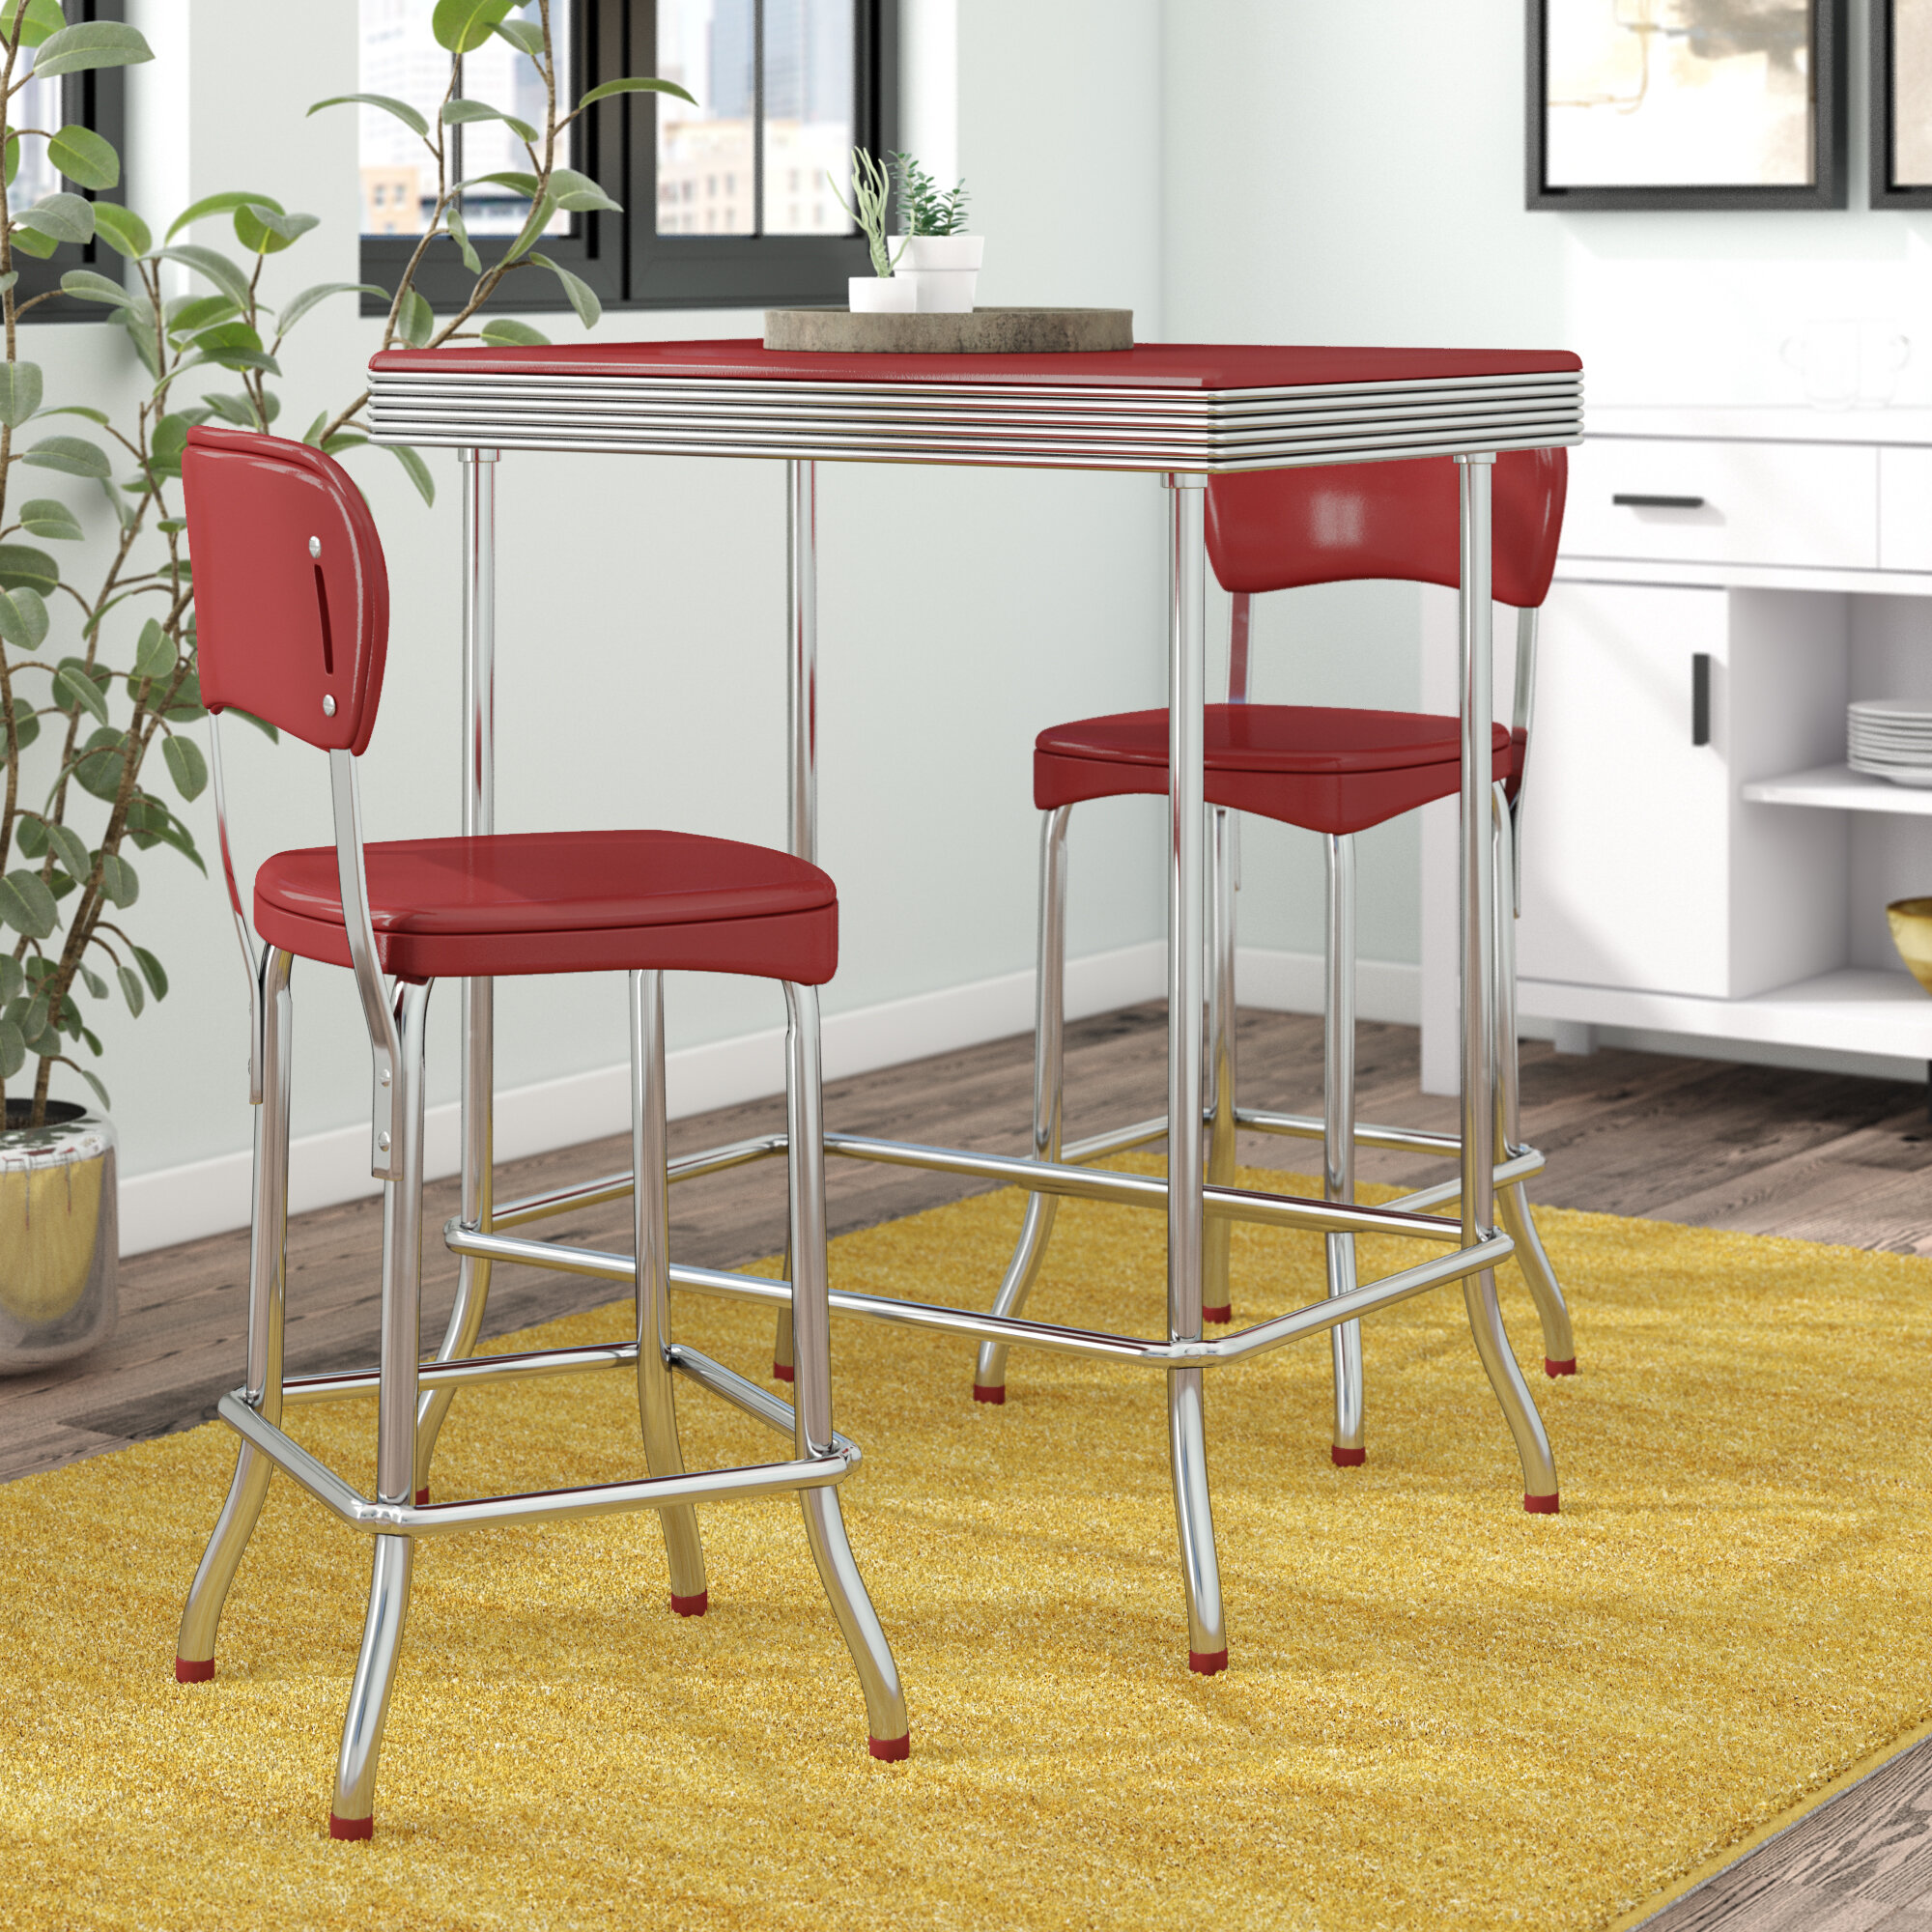 Retro Kitchen Table And Chairs Wayfair Ca